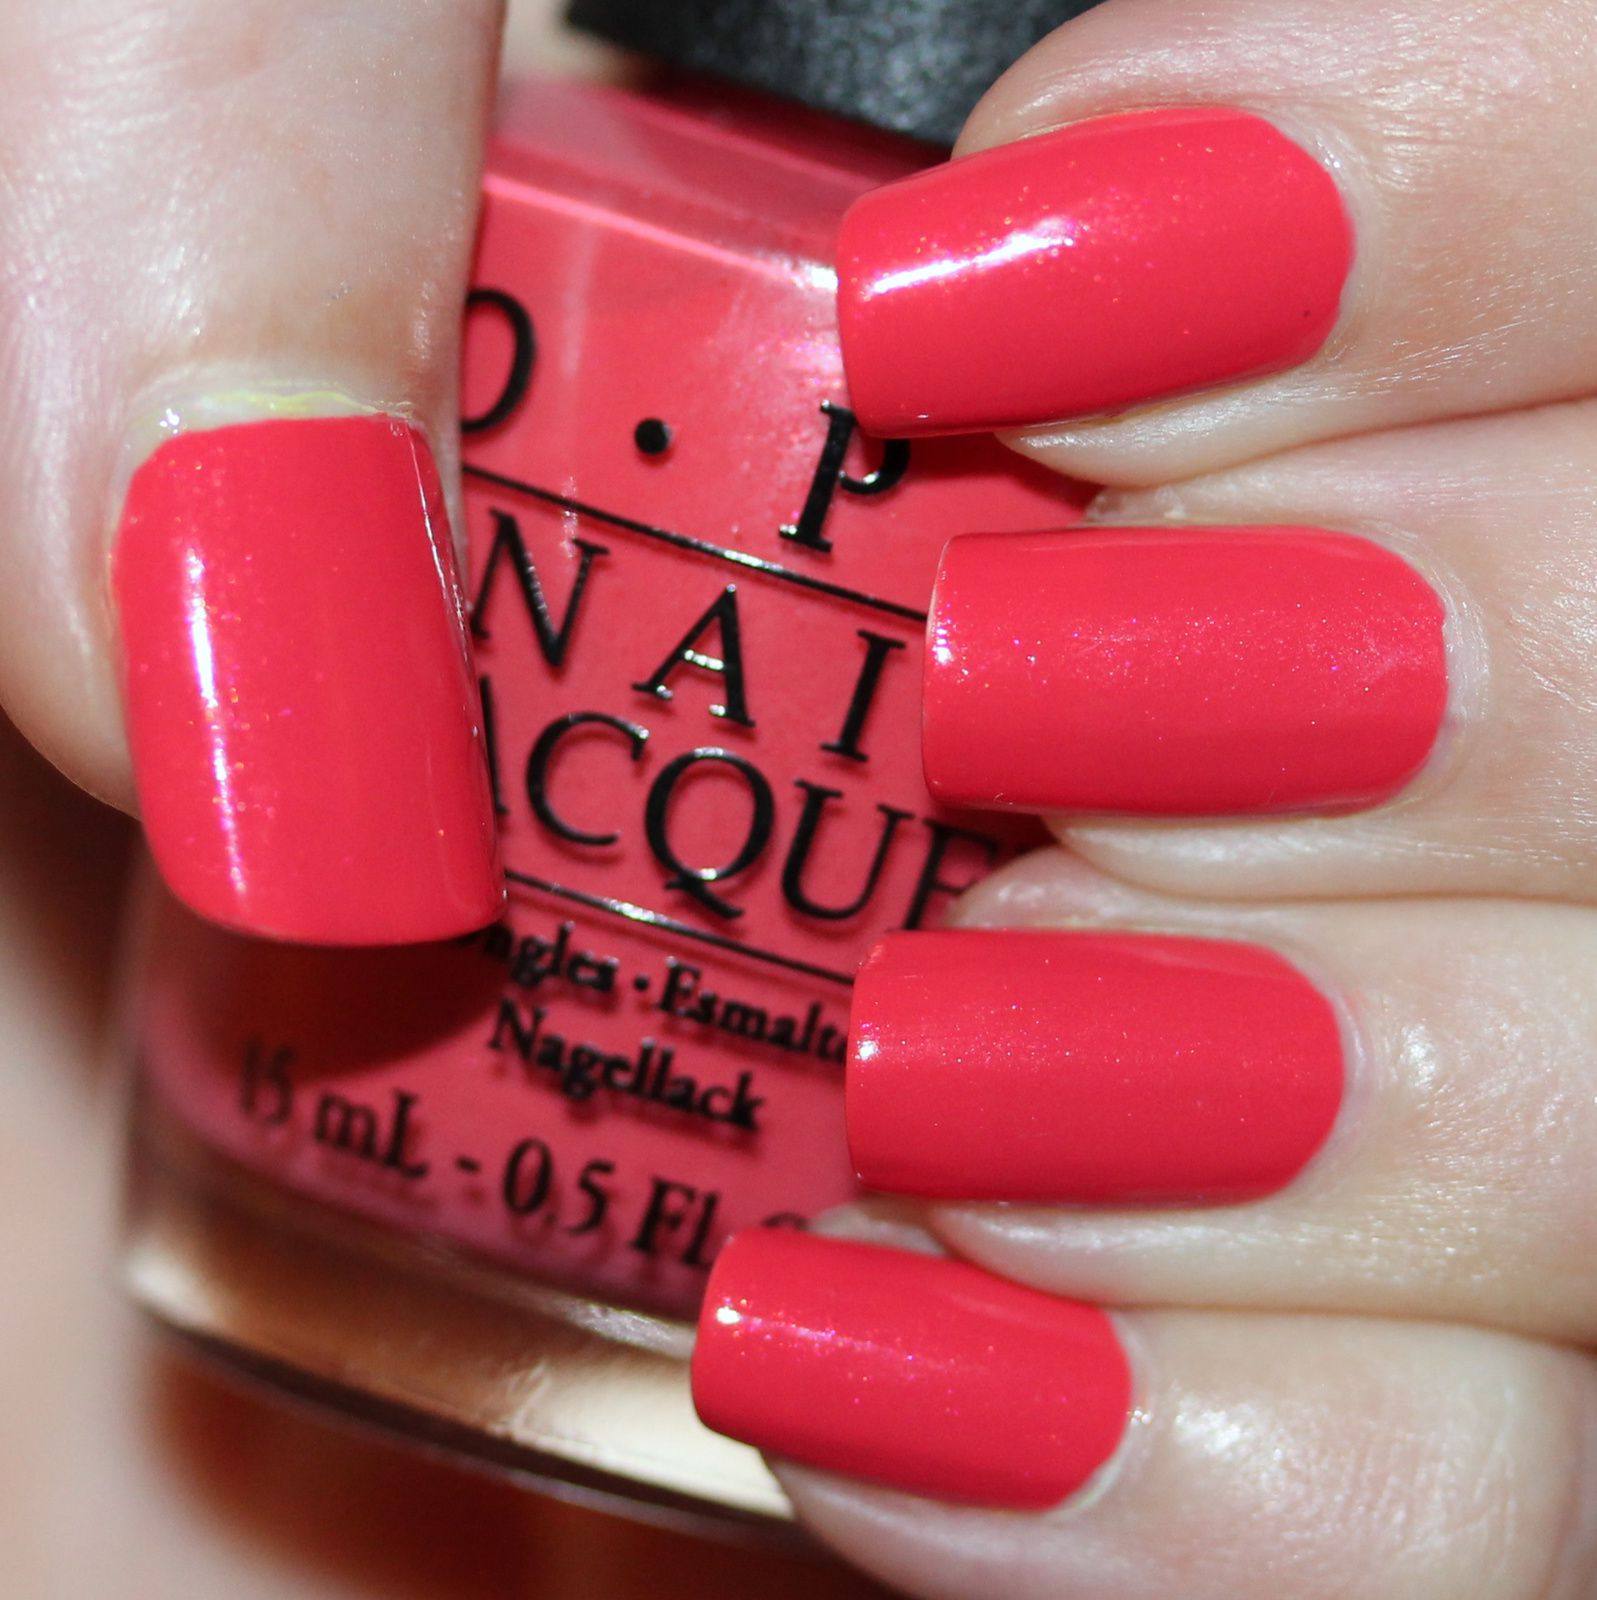 Duri Rejuvacote / OPI I Eat Mainely Lobster / Sally Hansen Miracle Gel Top Coat